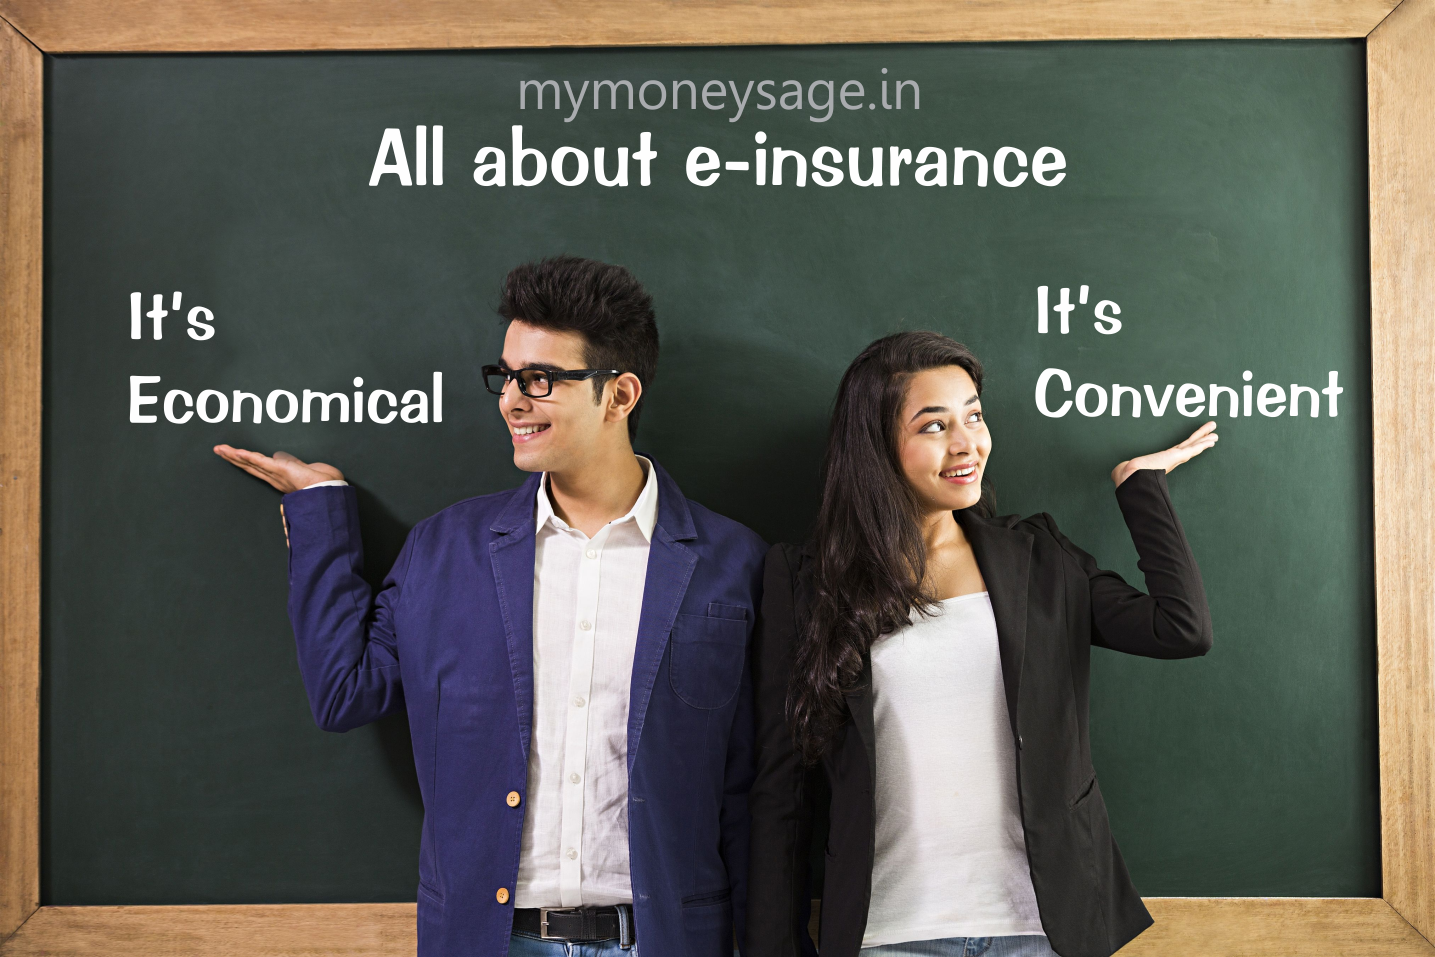 all about insurance repository and e -insurance account